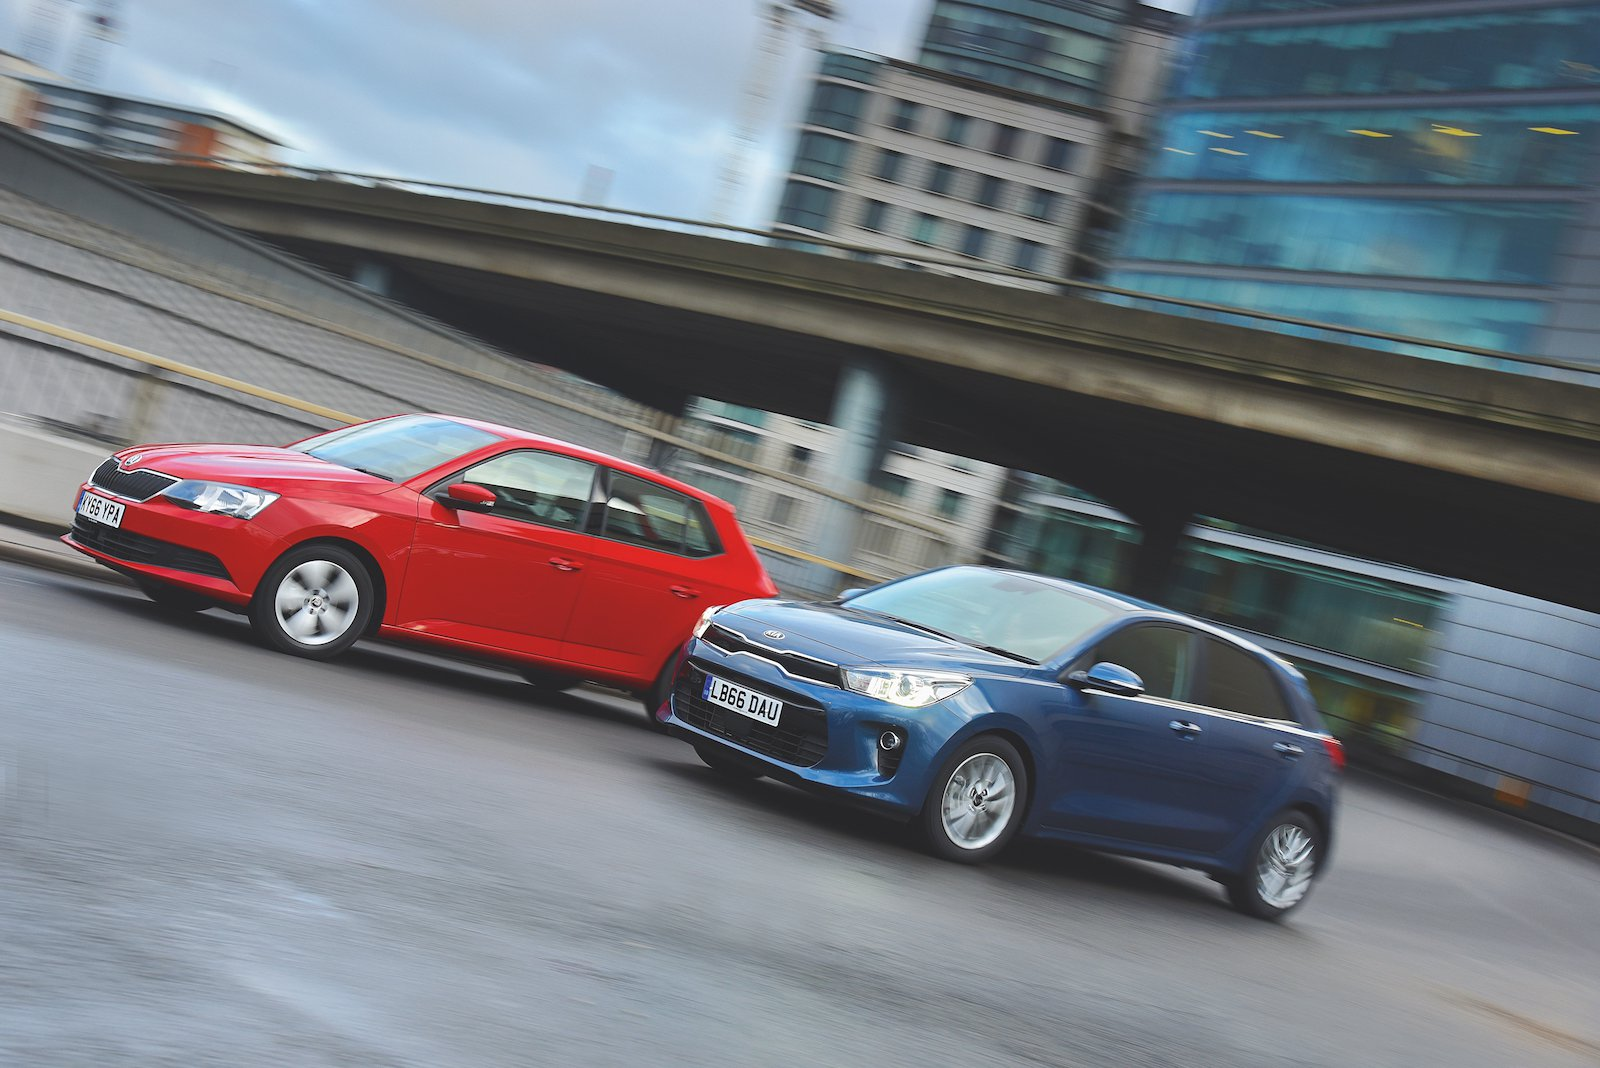 Used test: Kia Rio vs Skoda Fabia